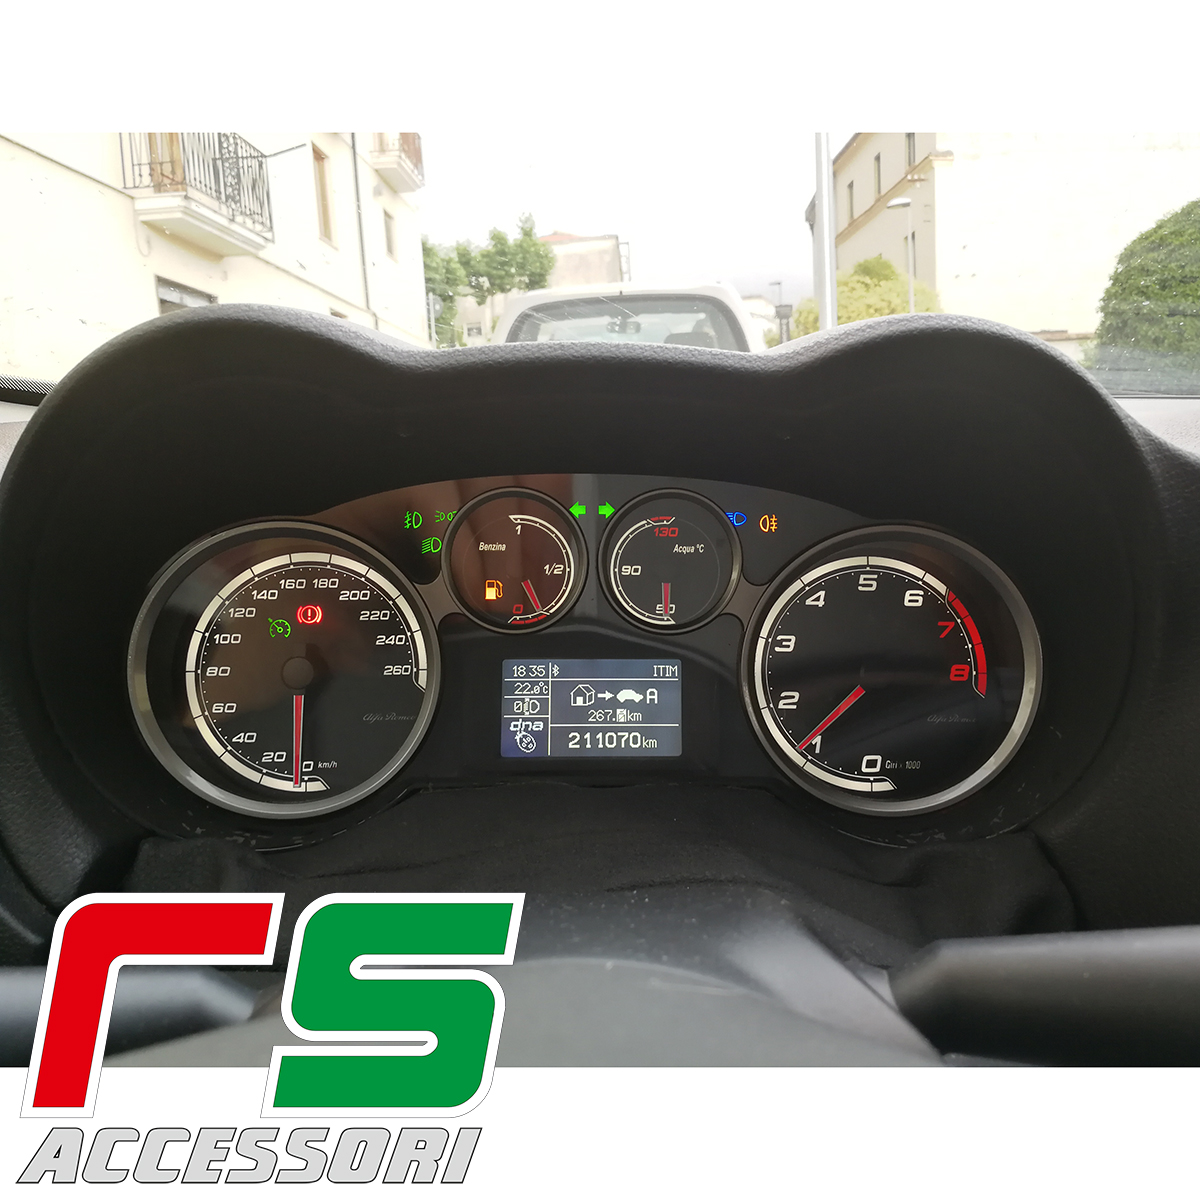 customized instrumentation Alfa Romeo Mito petrol